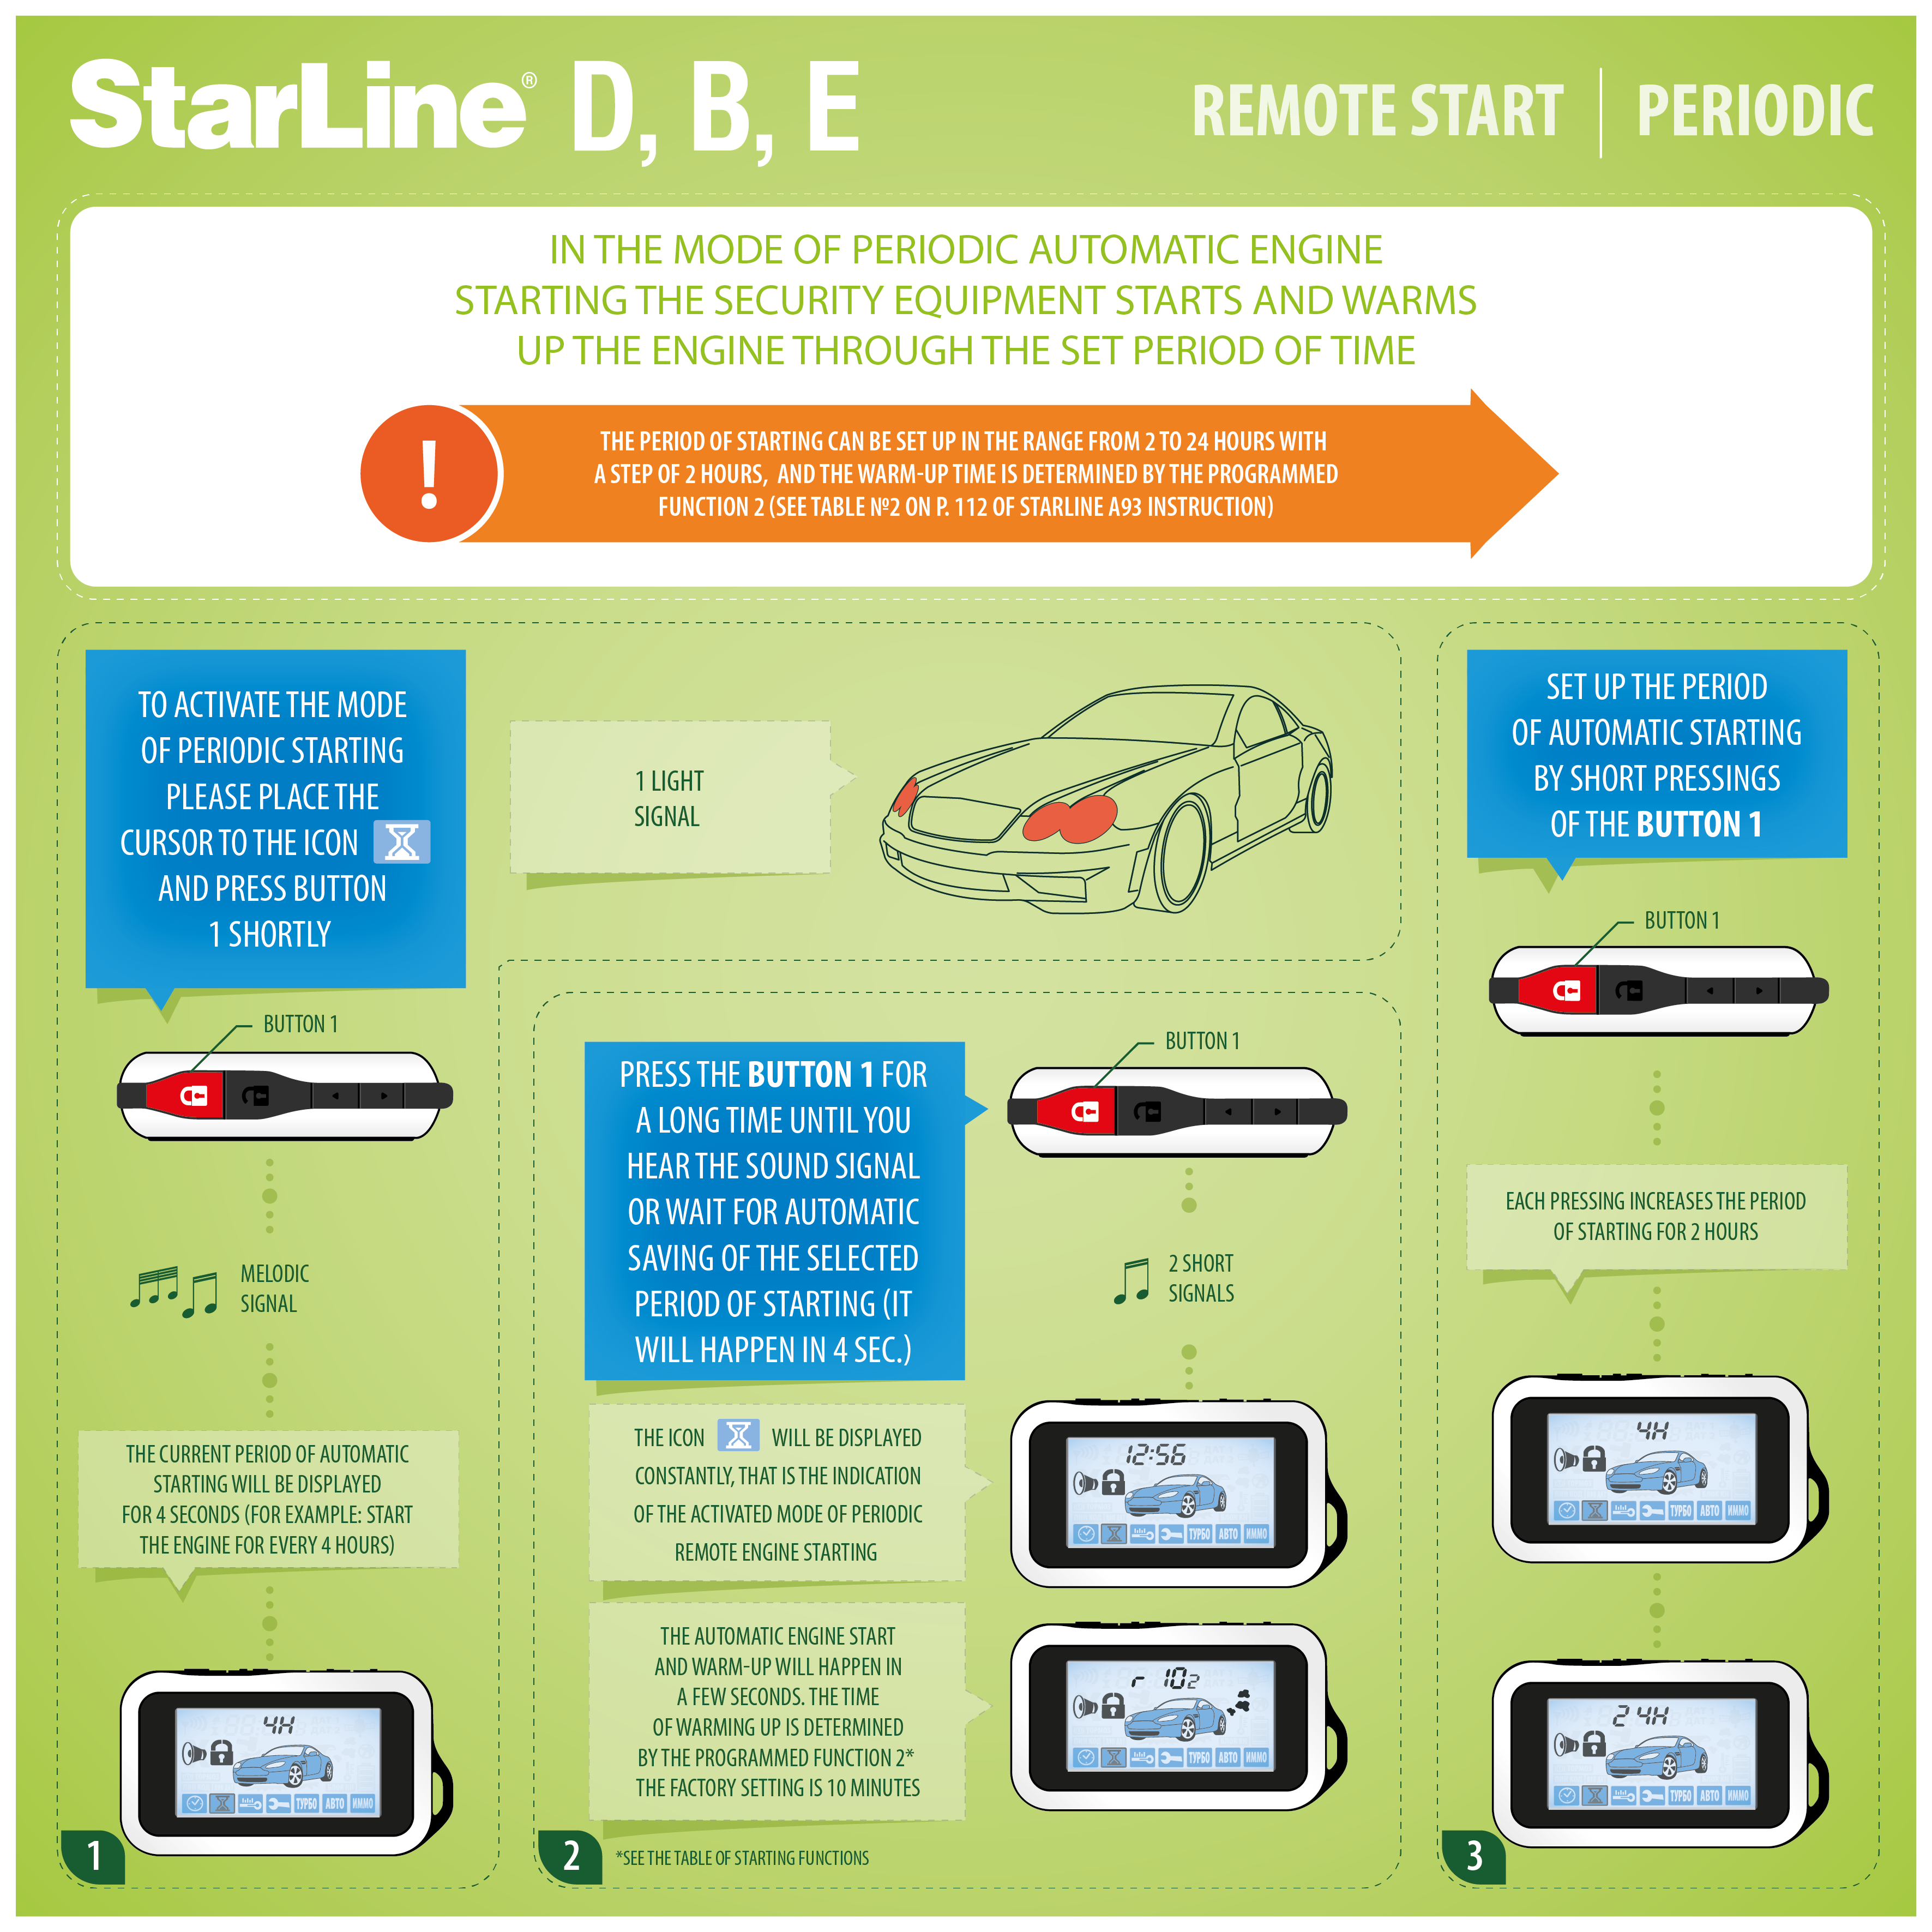 Remote Start One Way Car Alarm With Engine Function View Self Strline E B D